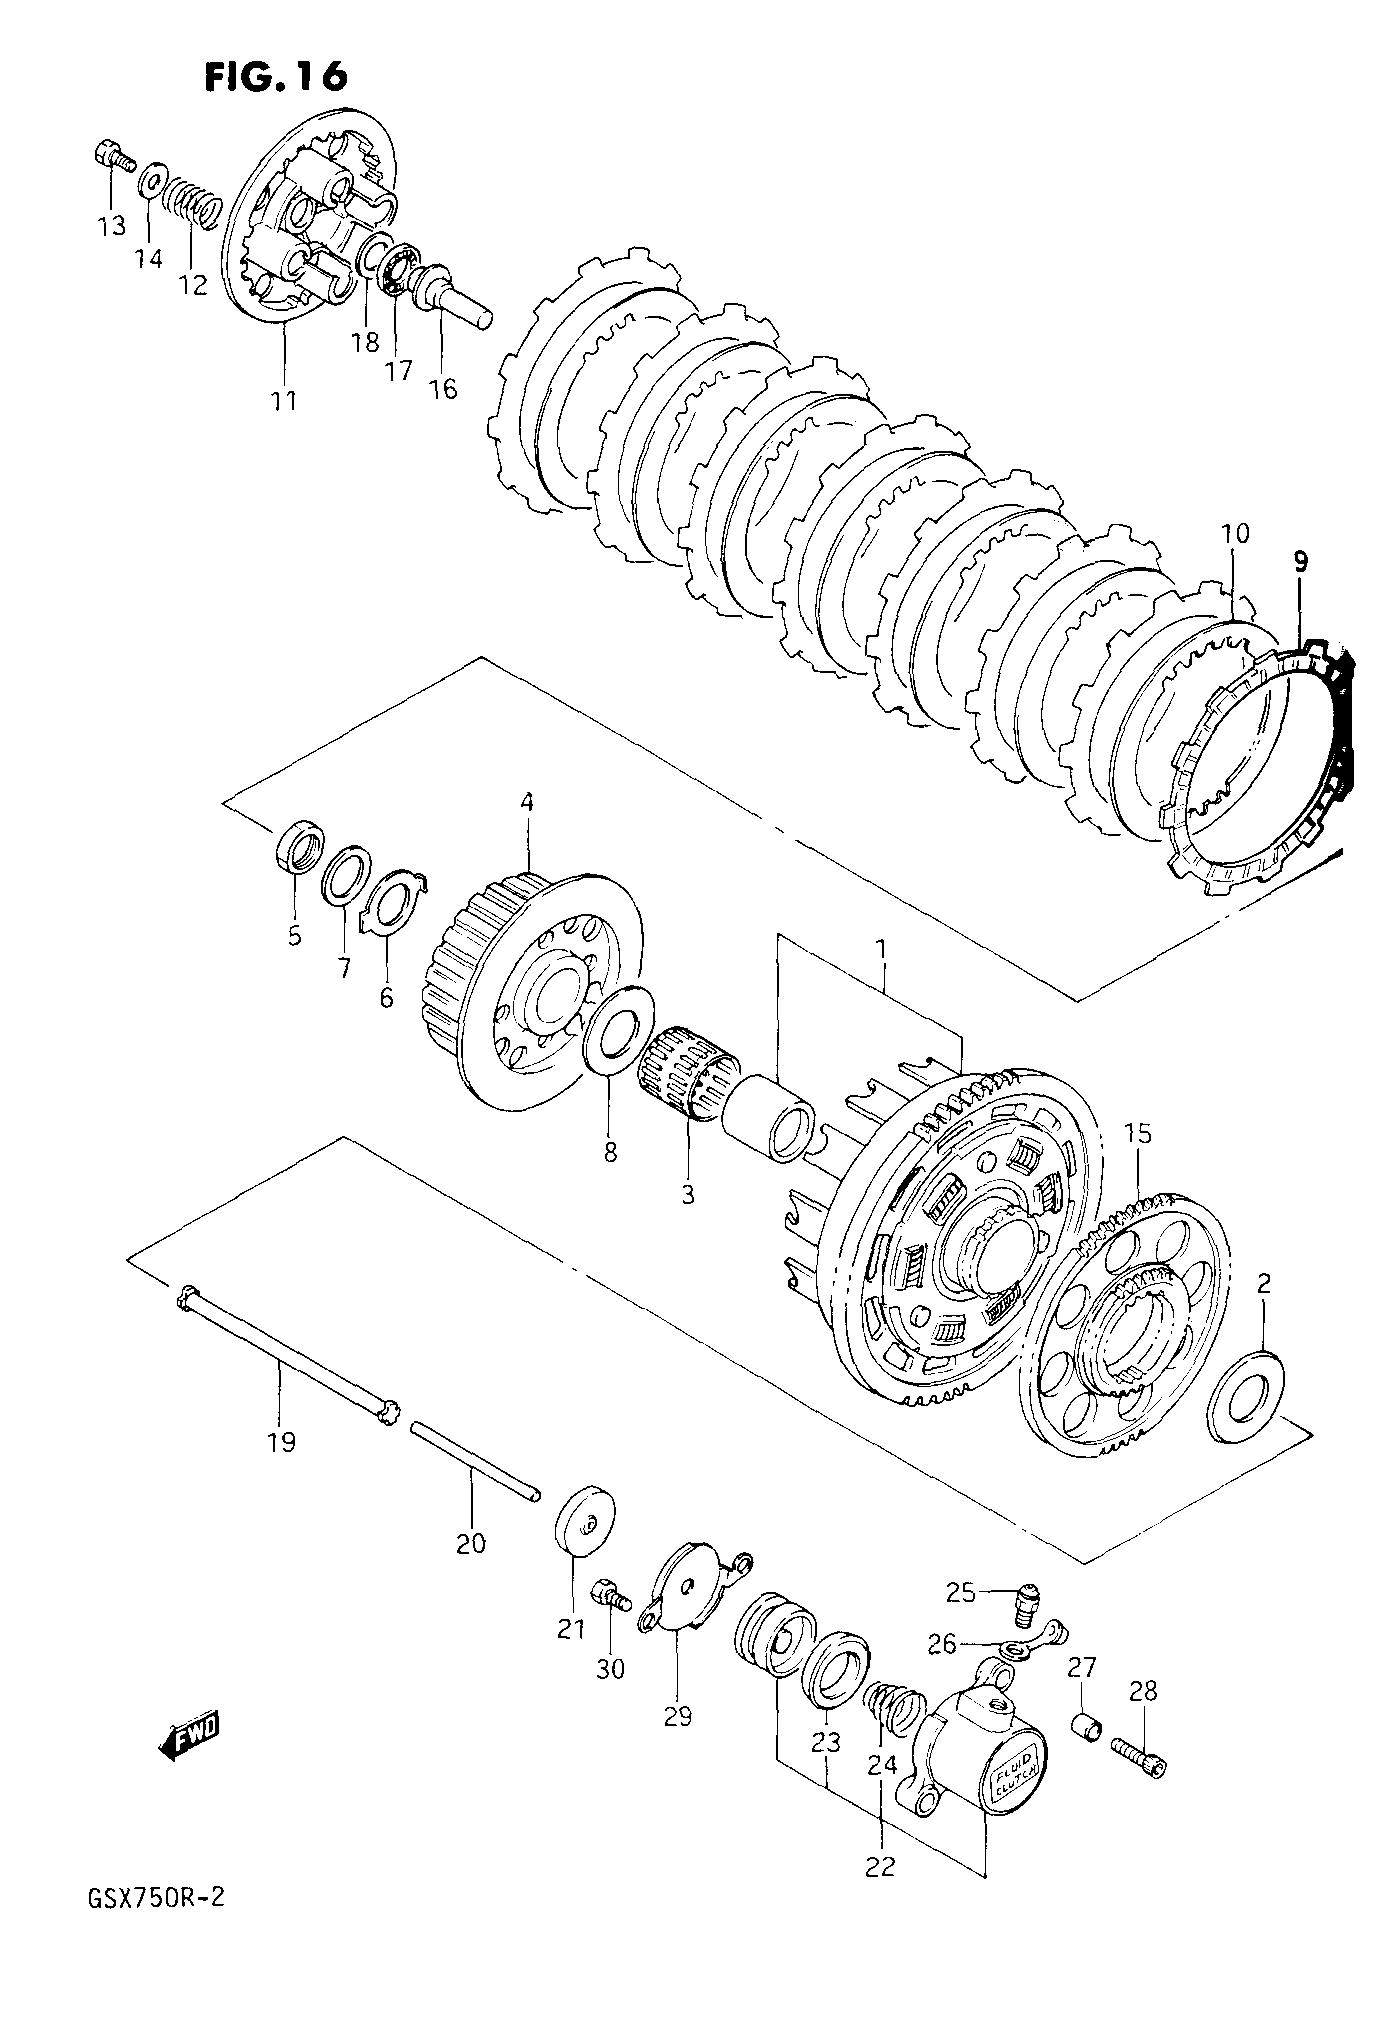 [WRG-3991] 1992 Gsxr 750 Engine Diagram